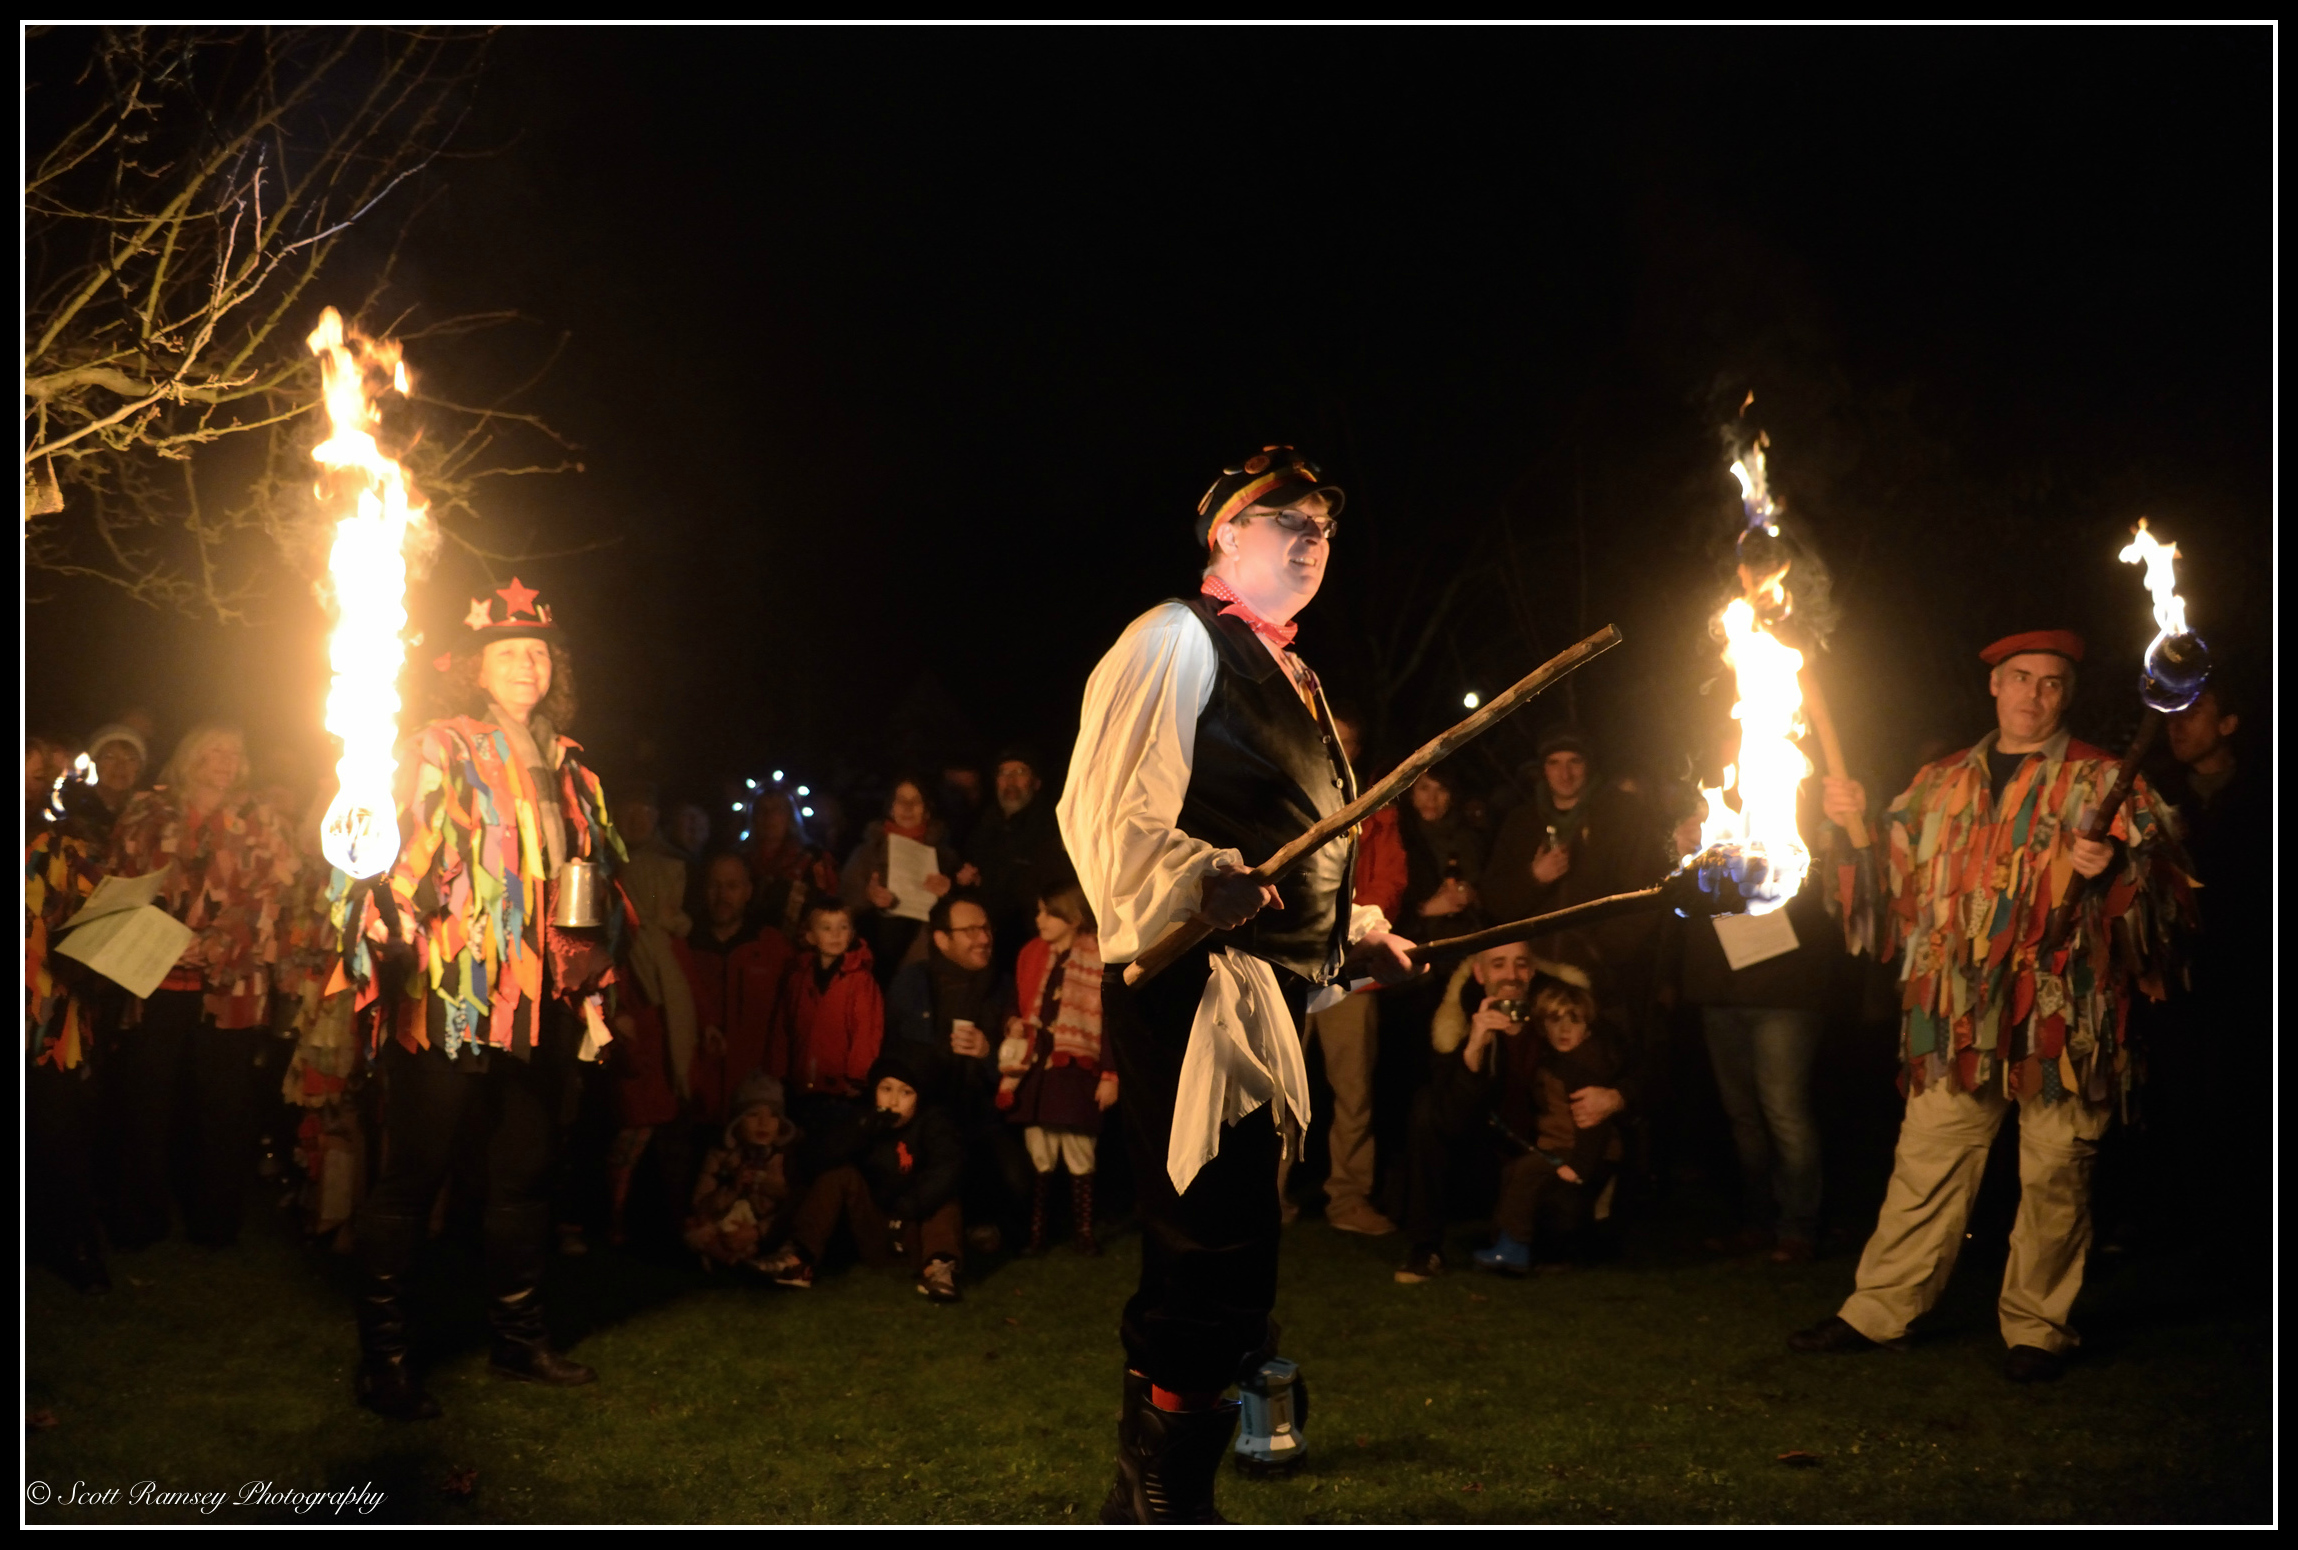 By the light of flaming torches the Wassail takes place in an apple orchard in Tarring, West Sussex.